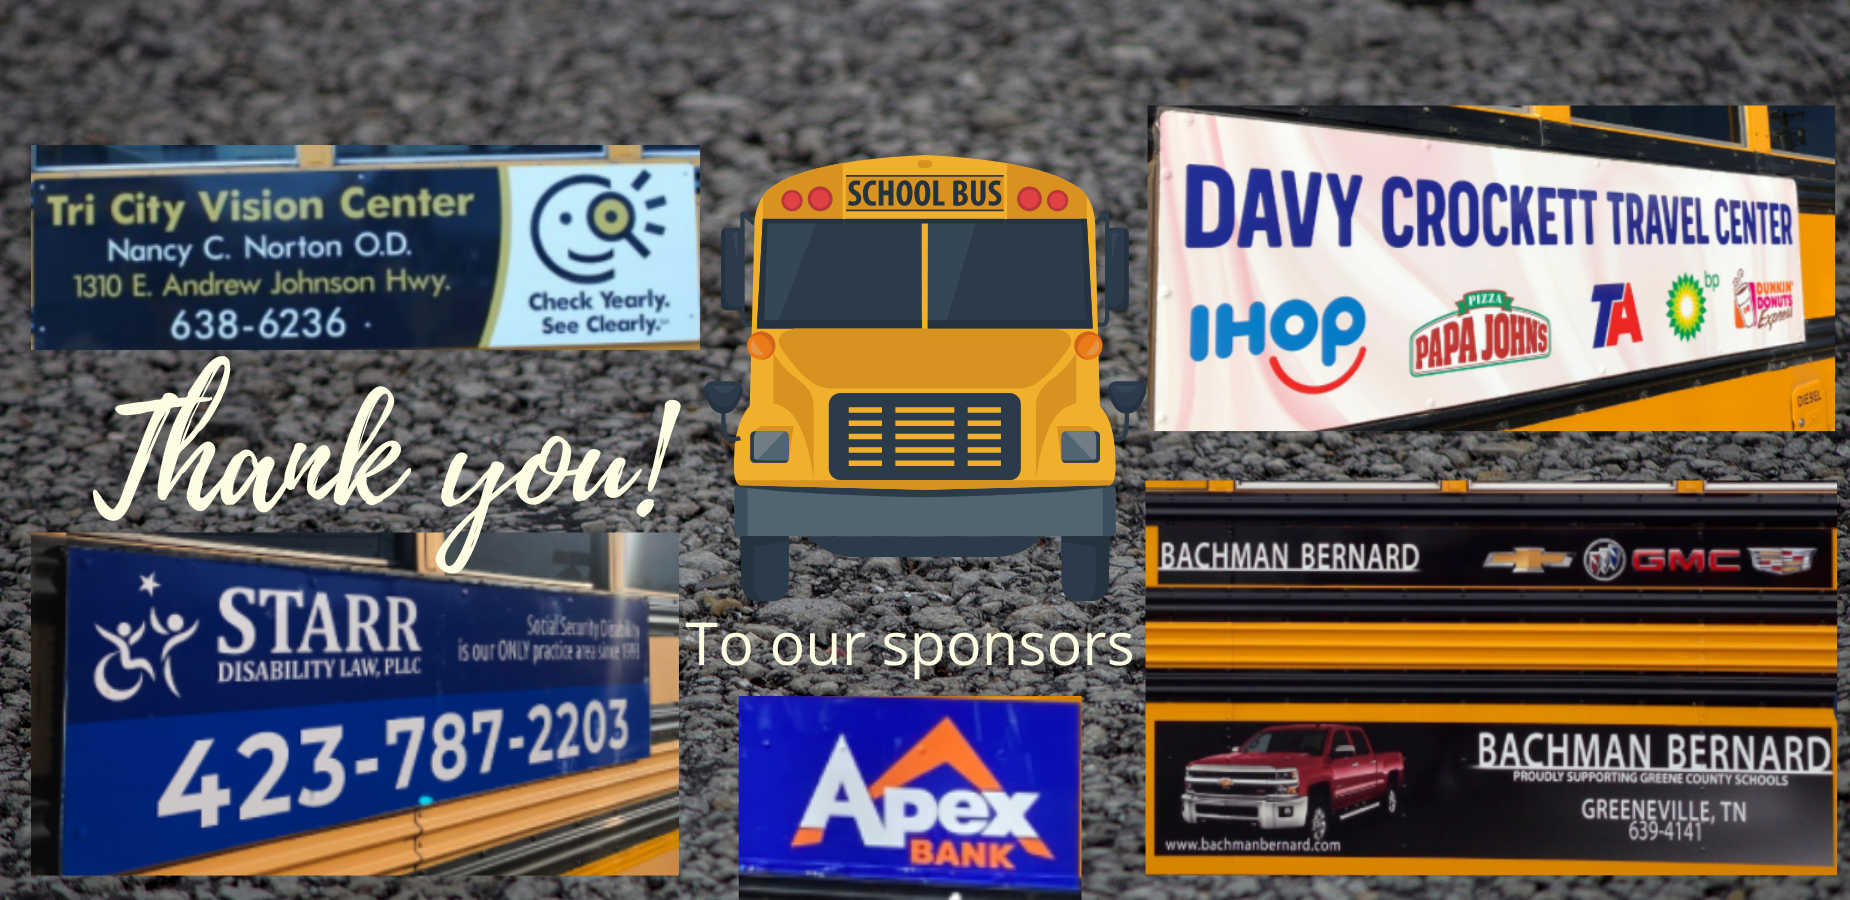 Thank you to bus sponsors